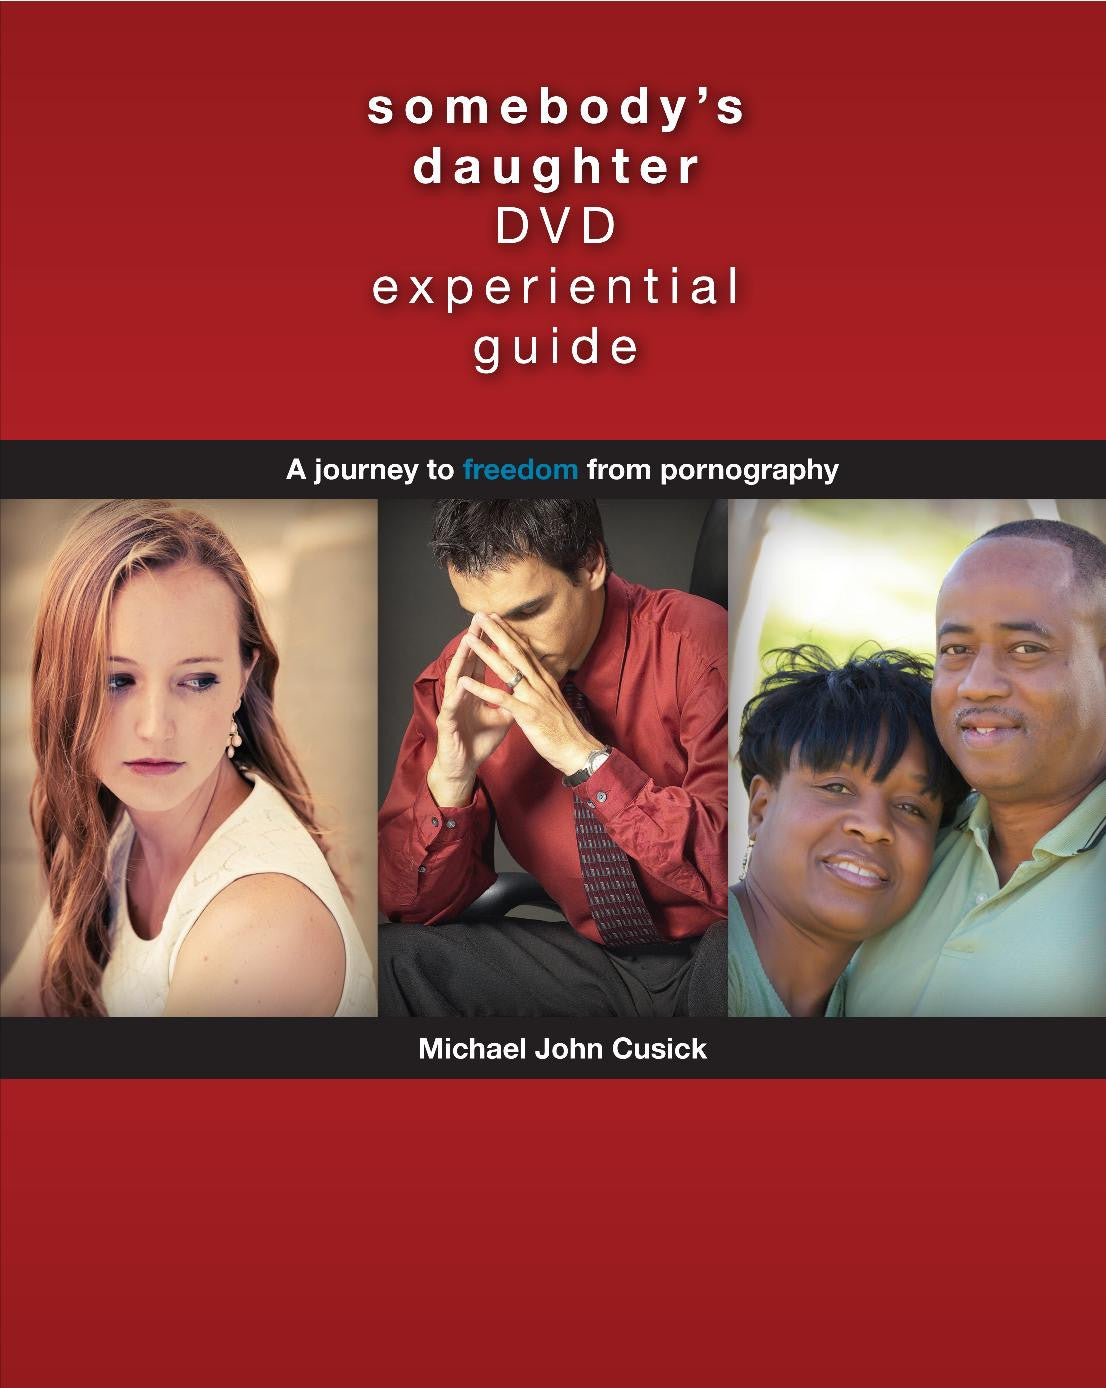 Somebody's Daughter DVD & Experiential Guide *Special Offer